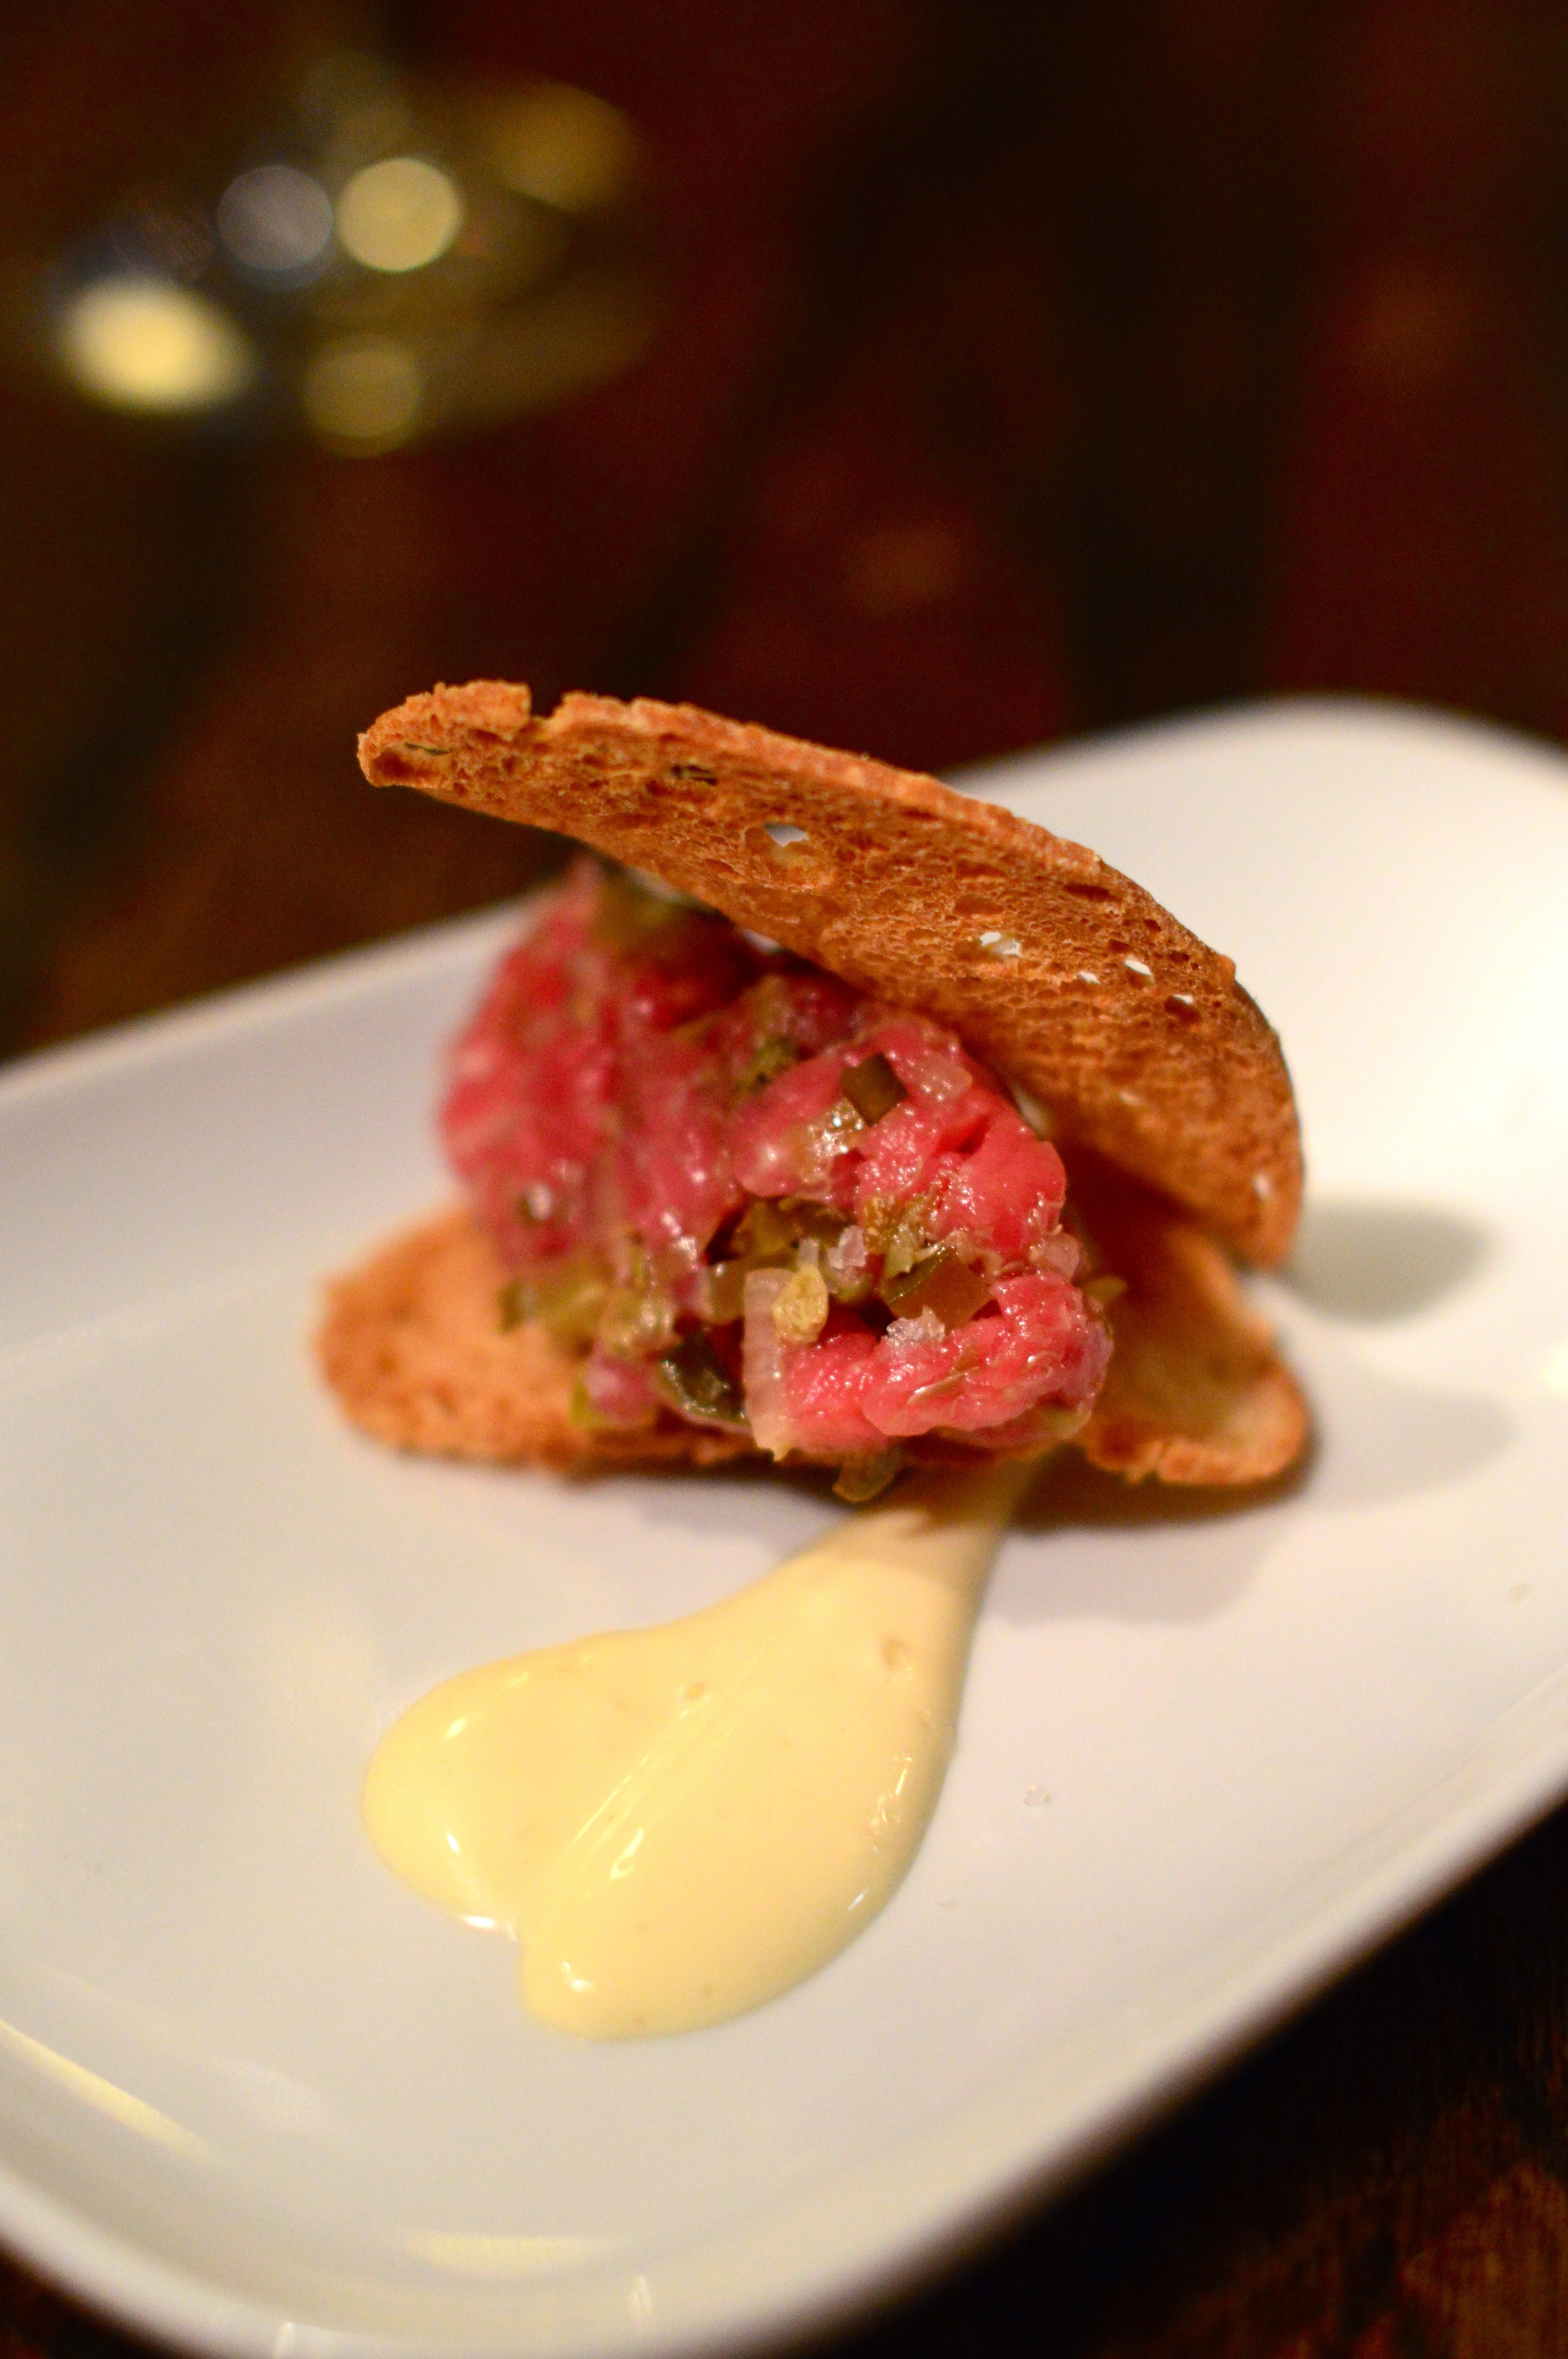 Each week there is a surprise fourth course! For us it was steak tartar.